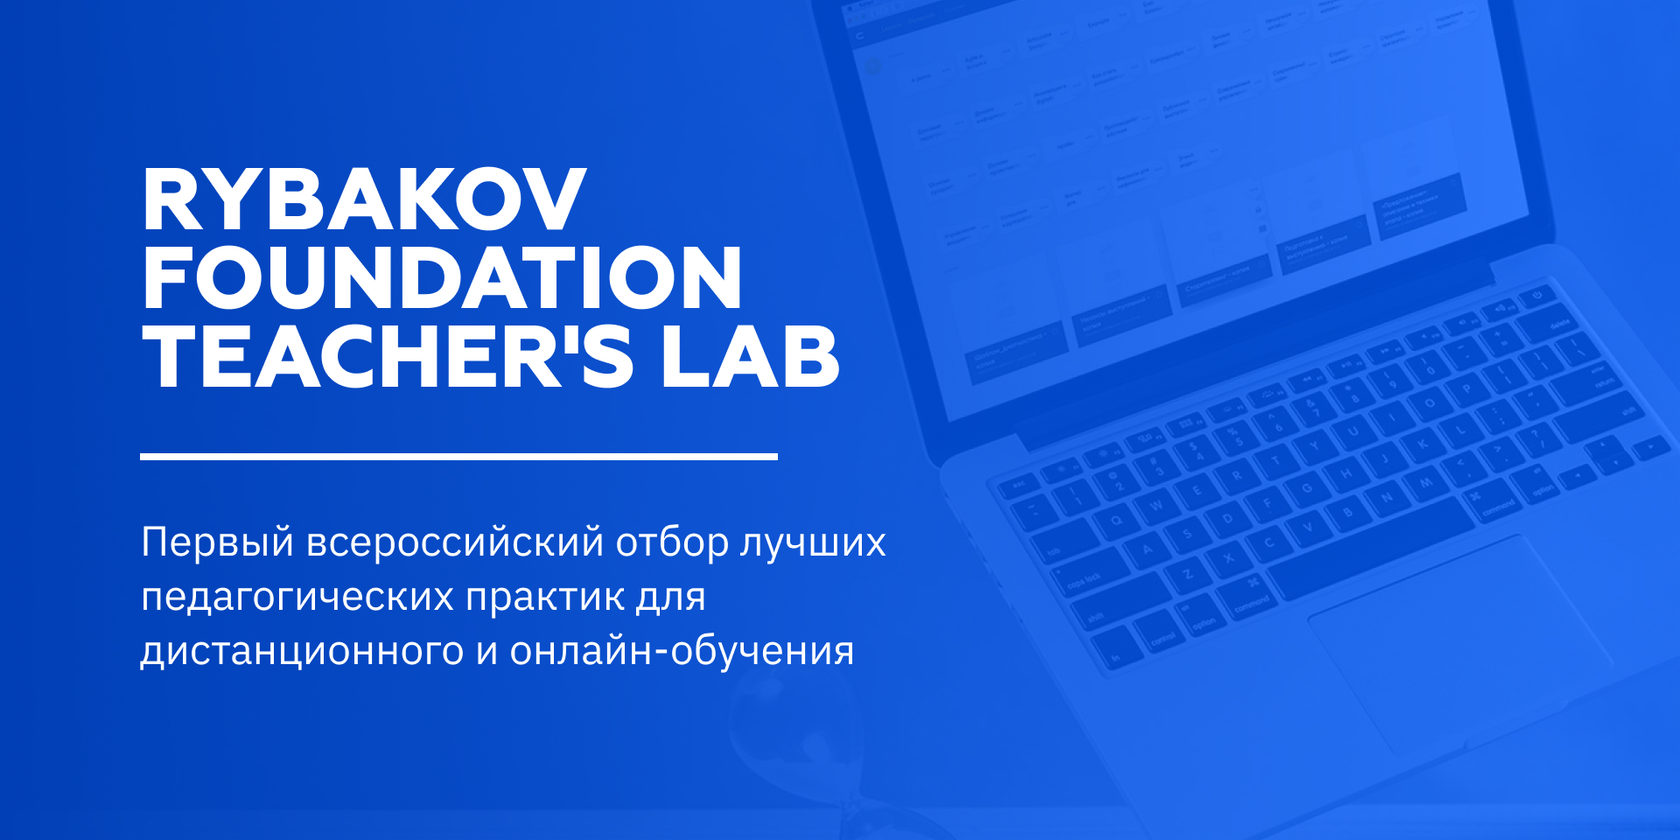 Библиотека Rybakov Foundation Teacher's Lab